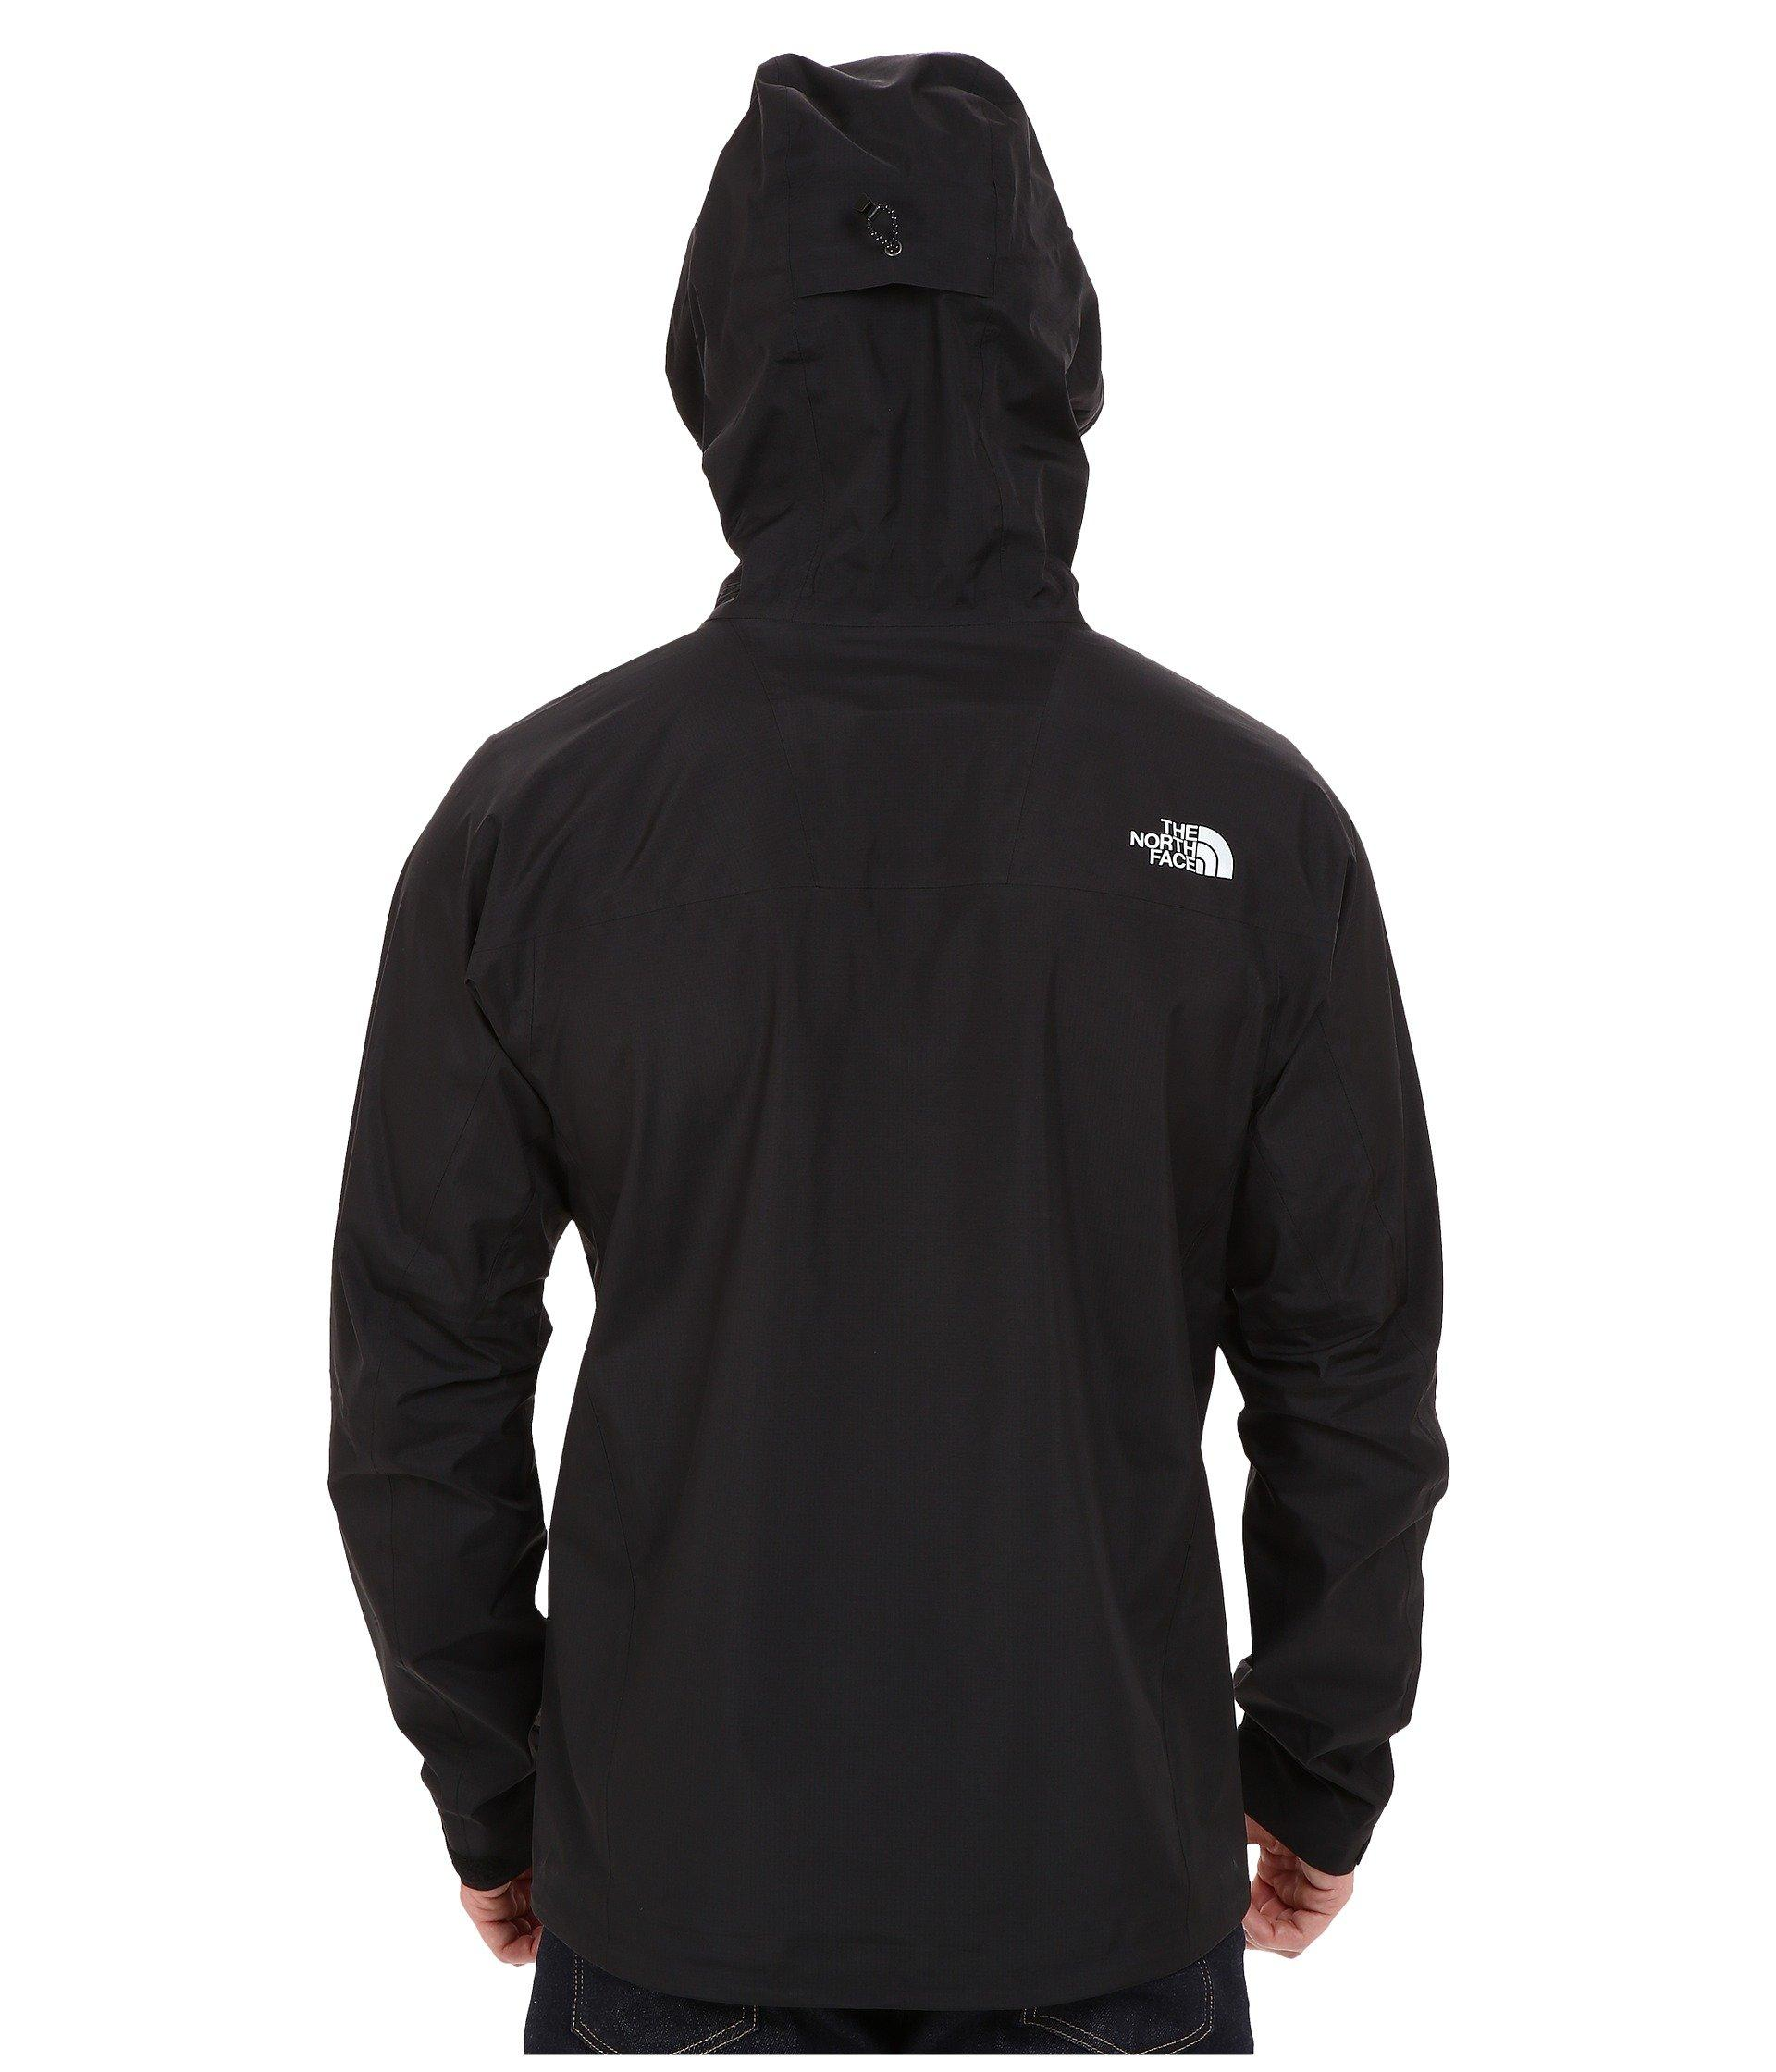 ac2dbd78fb8e Lyst - The North Face Oroshi Jacket in Black for Men